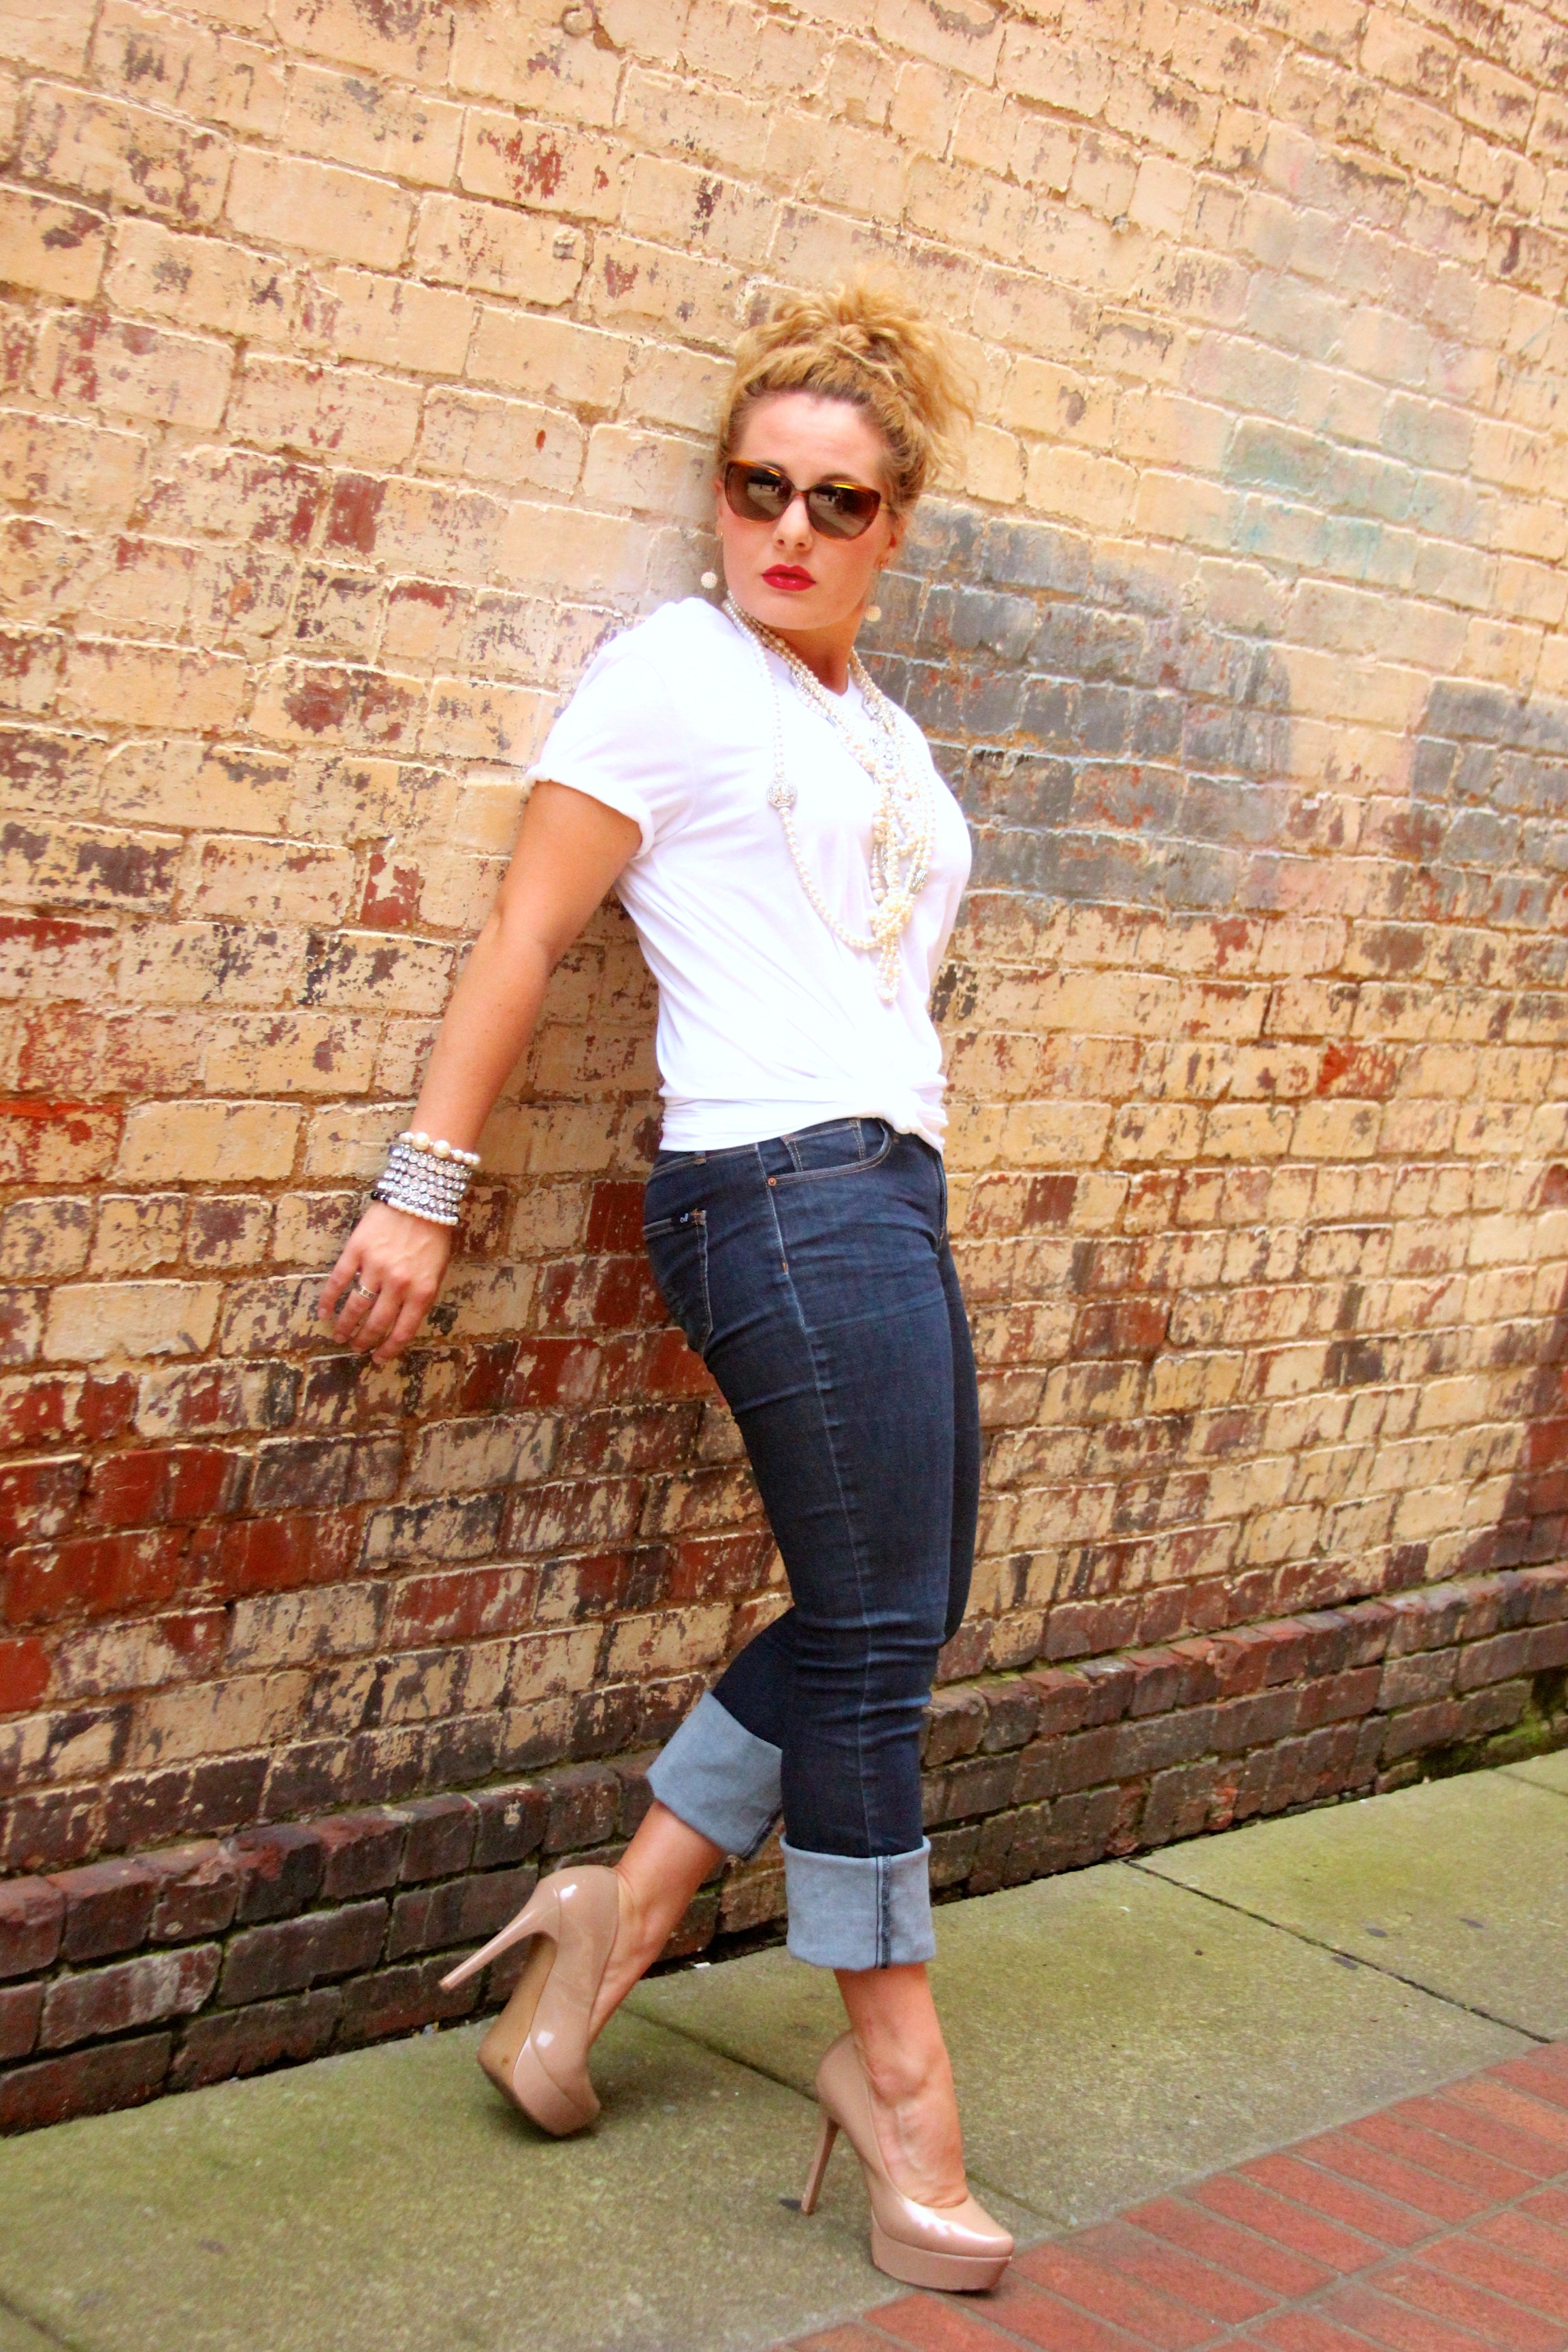 White t shirt and blue jeans - Img_0033